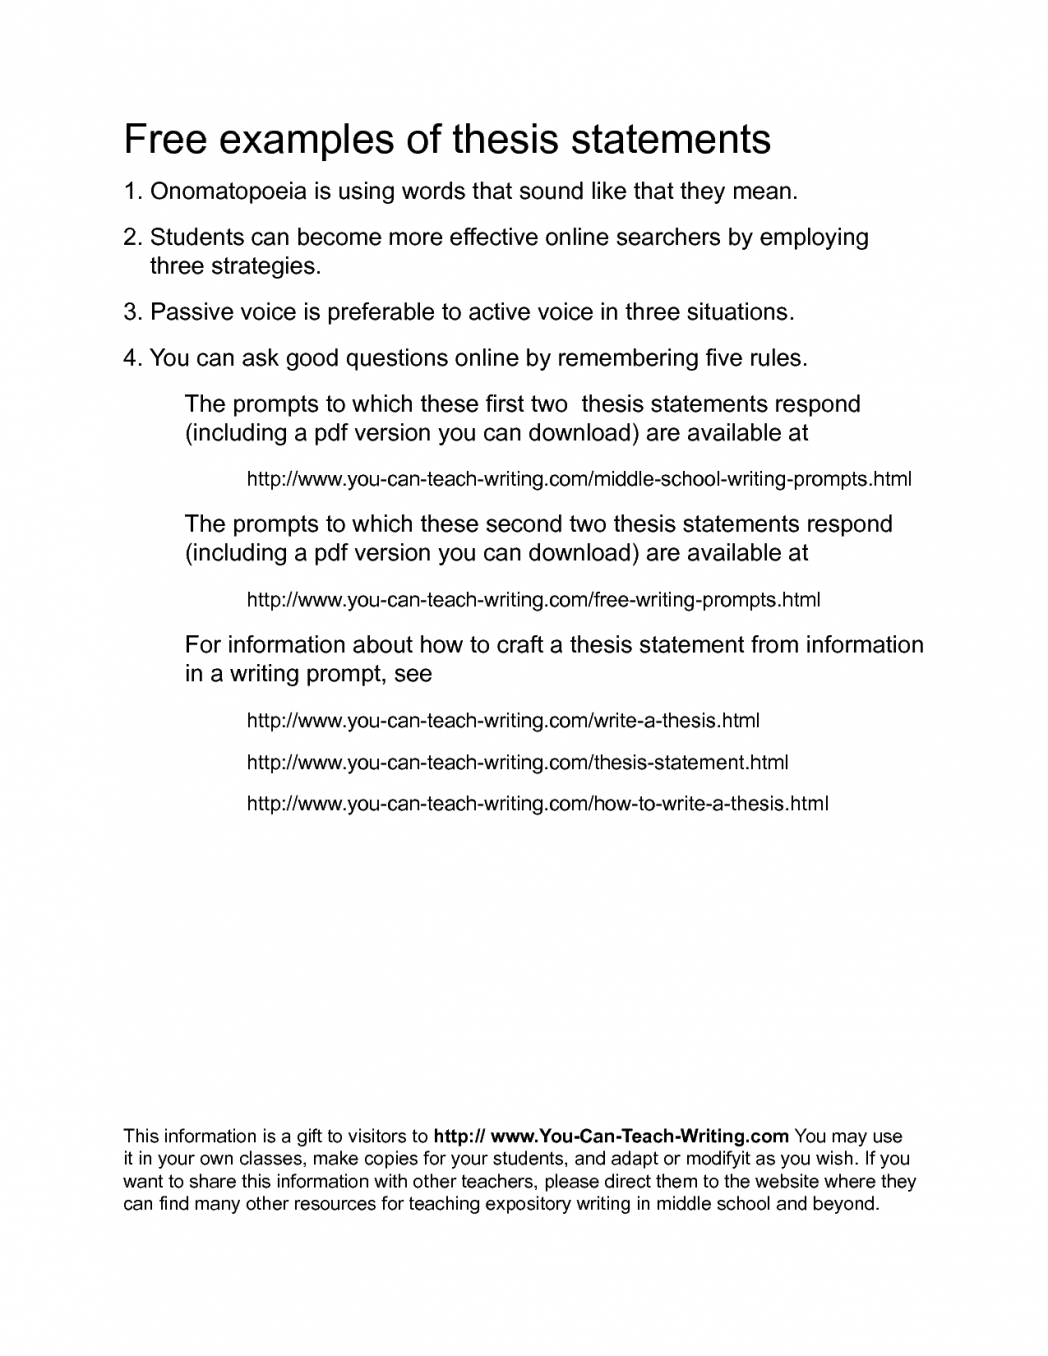 Essay Paper Writing Service  Jane Eyre Essay Thesis also Essays On Science And Religion  Essay Topics Hamlet For Thesis How To Write From Writing  The Thesis Statement In A Research Essay Should